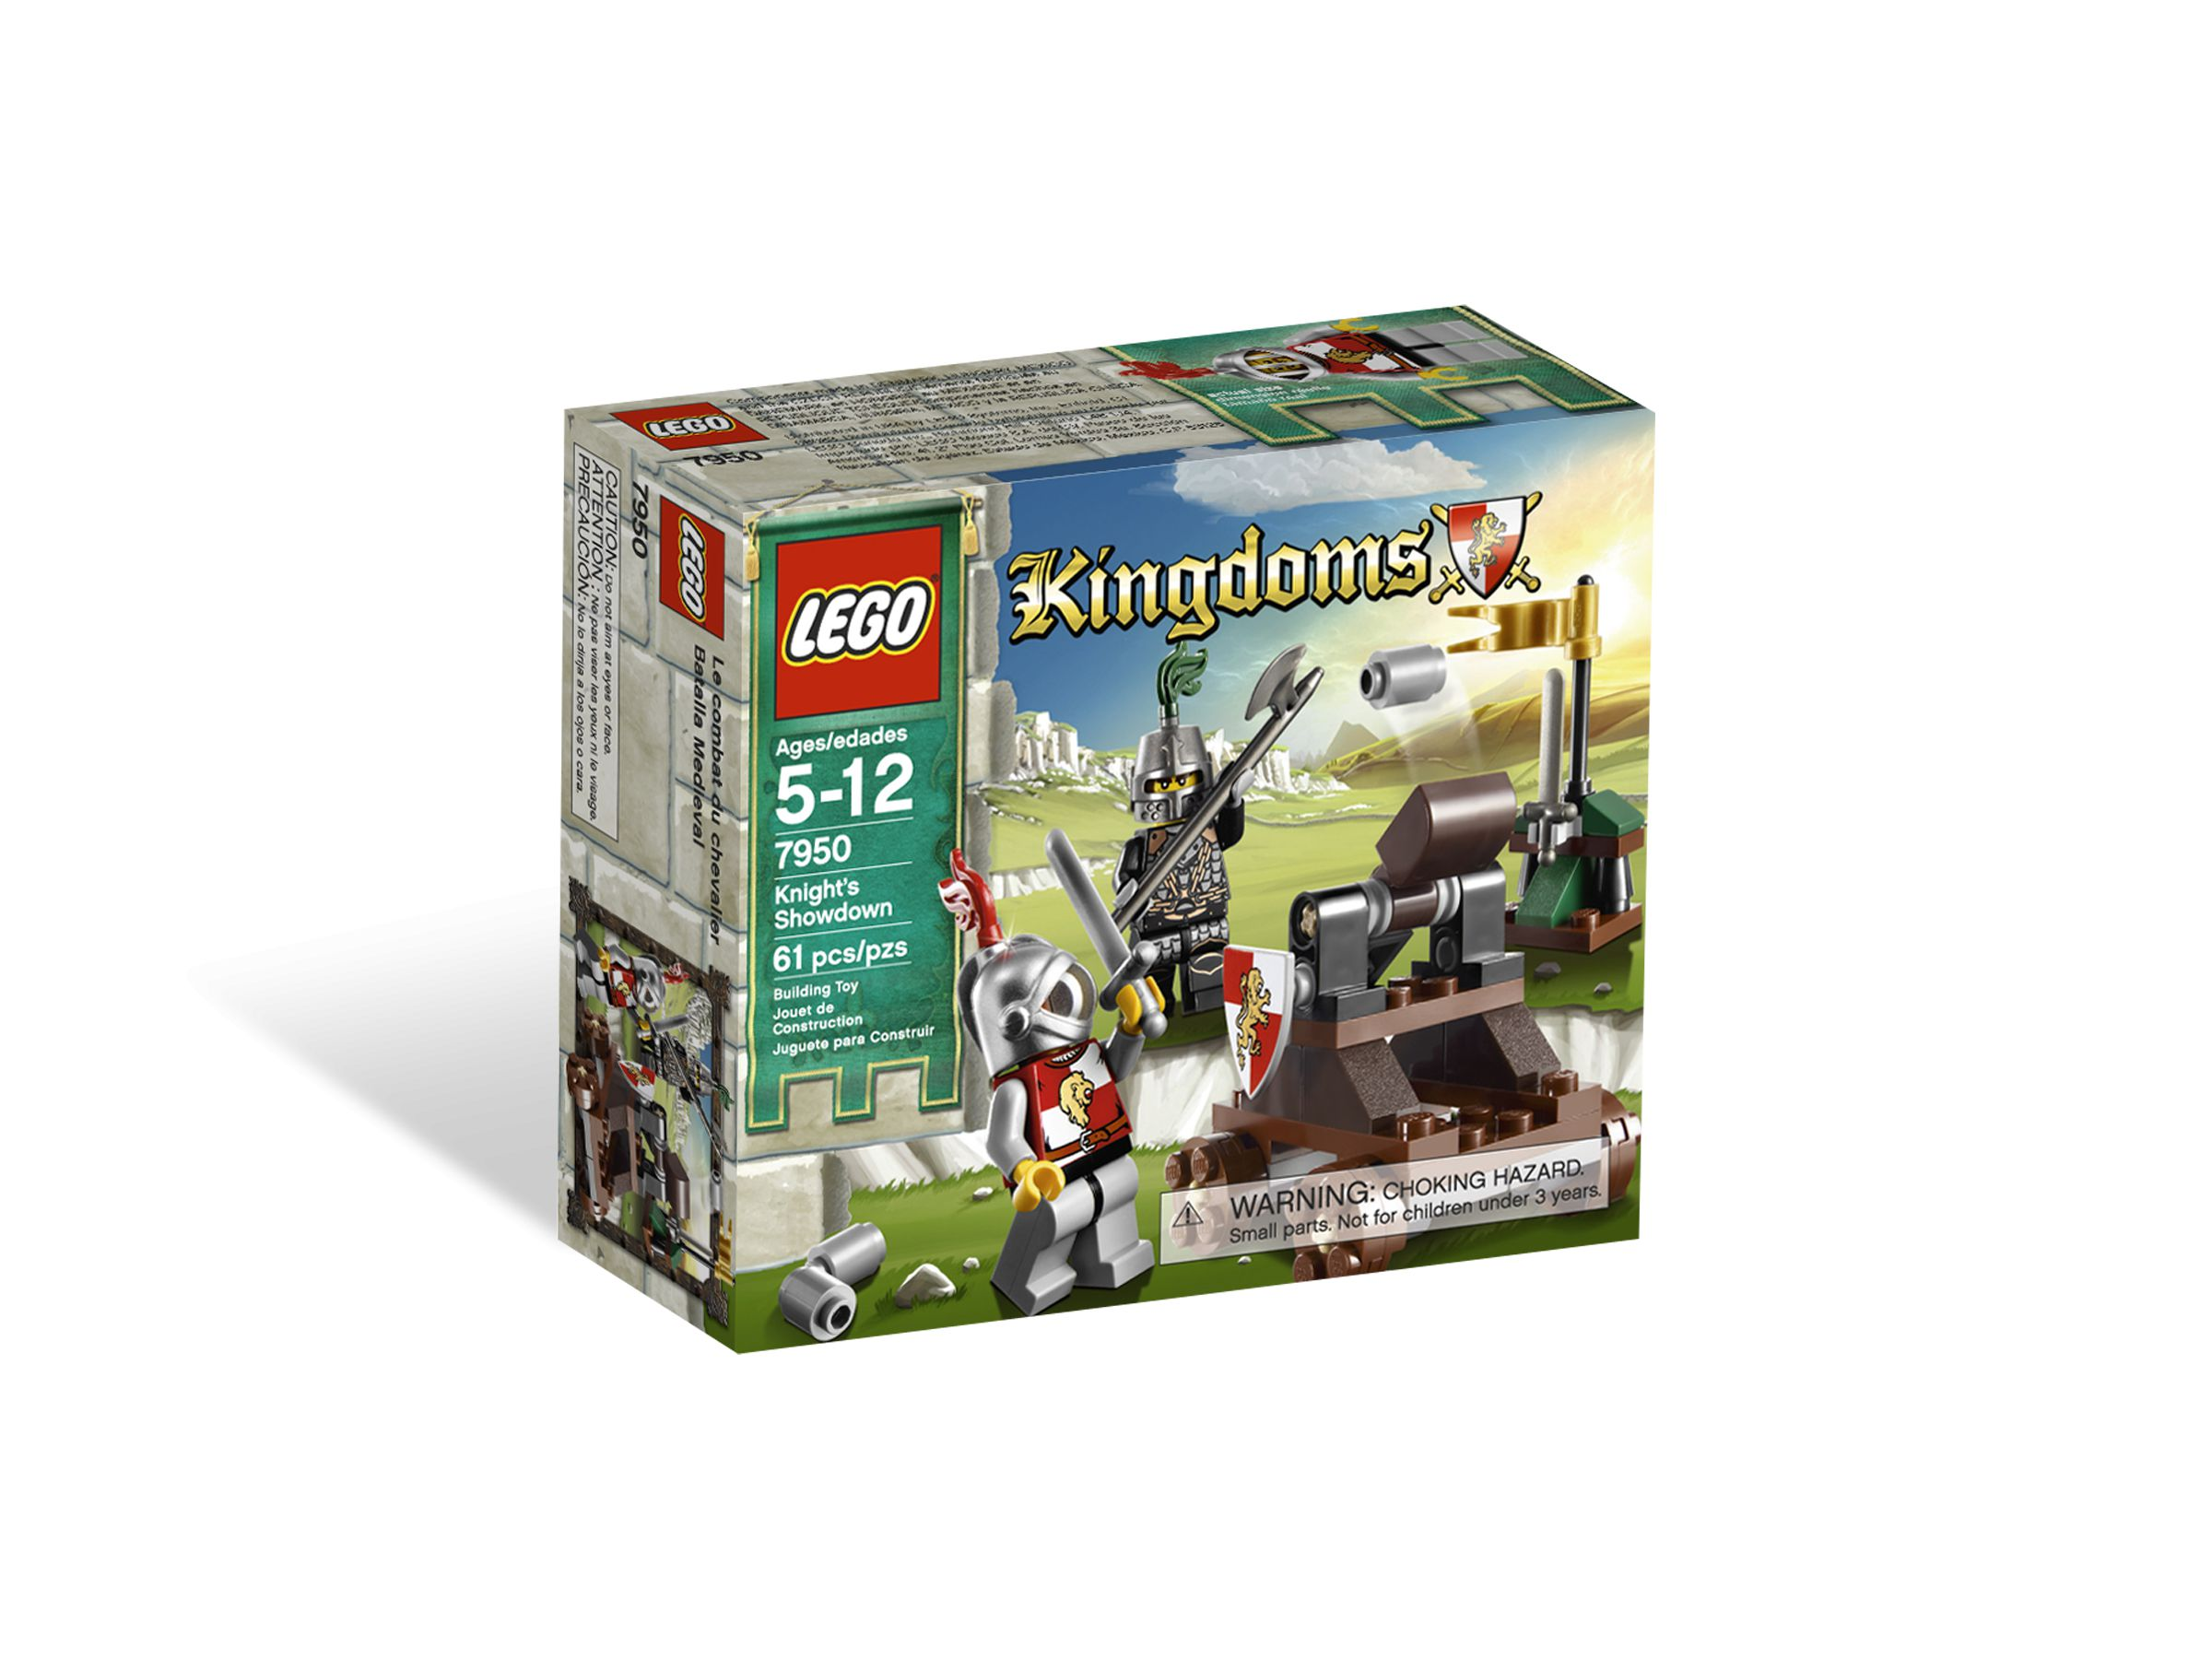 LEGO Castle 7950 Knight's Showdown LEGO_7950_alt1.jpg